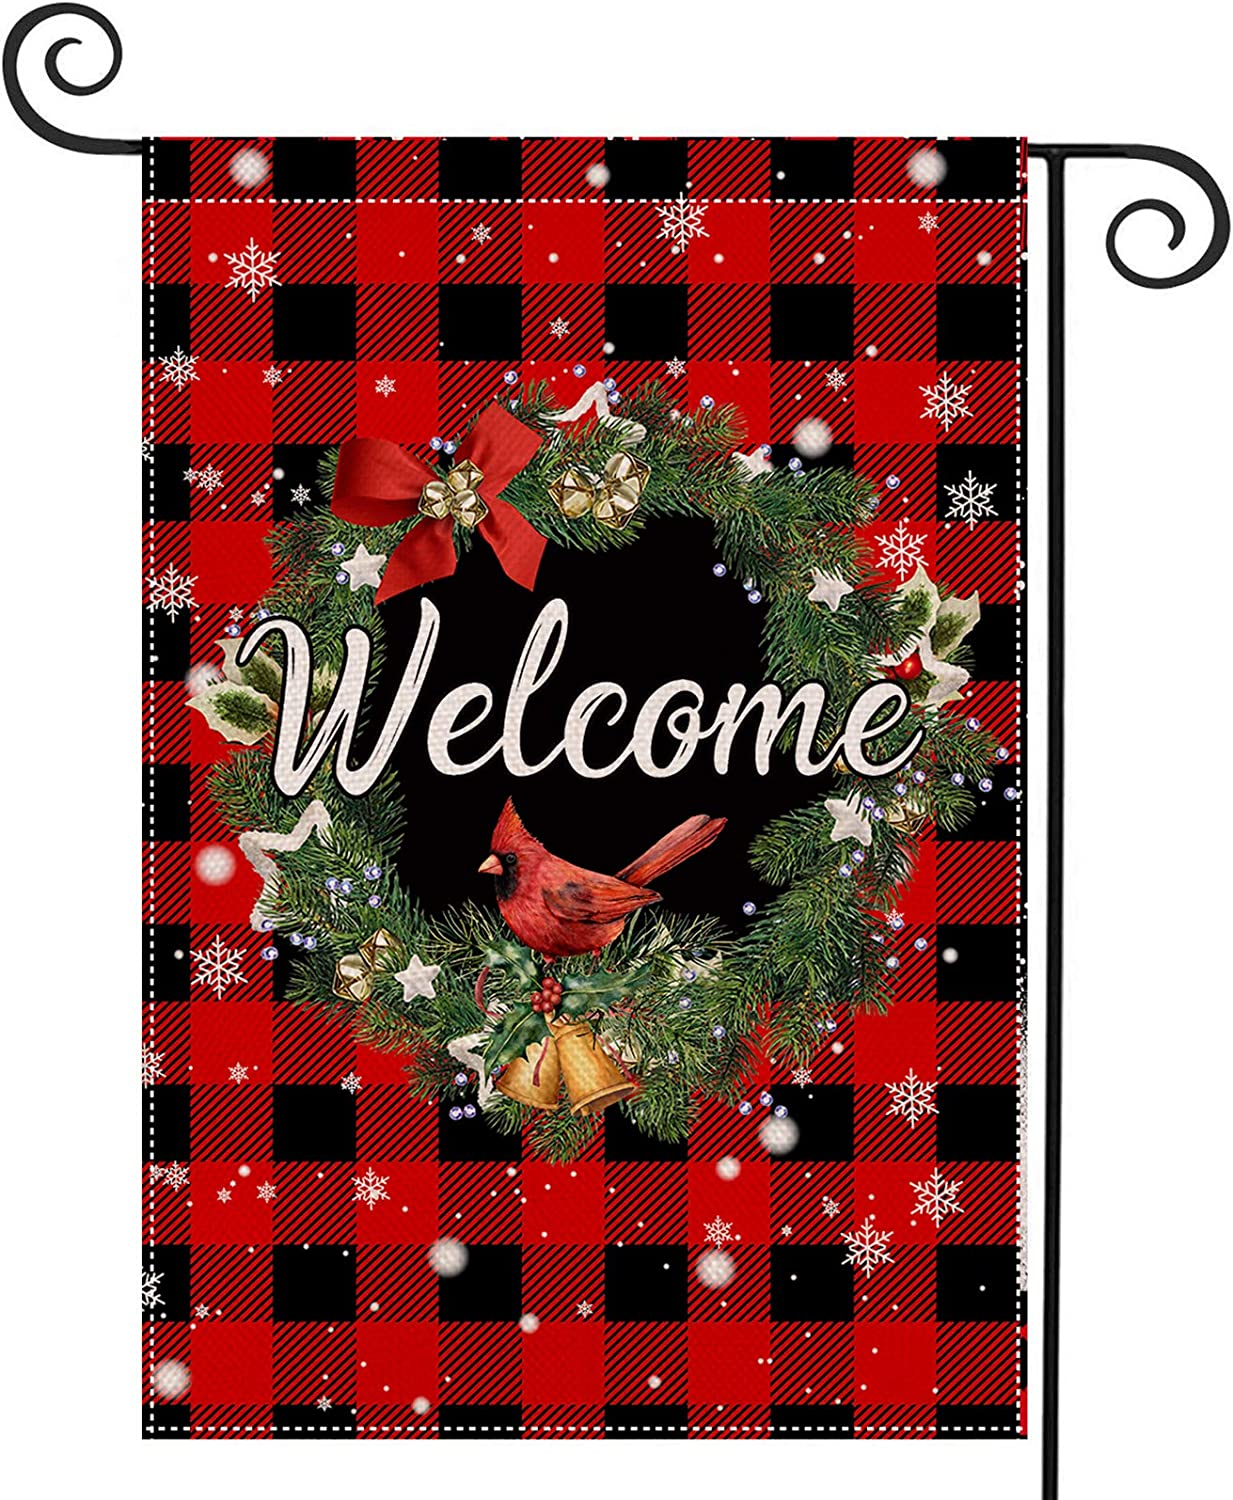 EKOREST Christmas Garden Flag Coniferous Wreath Buffalo Check Plaid Decorations Vertical Double Sided 12.5 x 18 Inch Farmhouse Burlap Xmax Red Welcome Yard Signs Outdoor Decor for Lawn Patio Décor